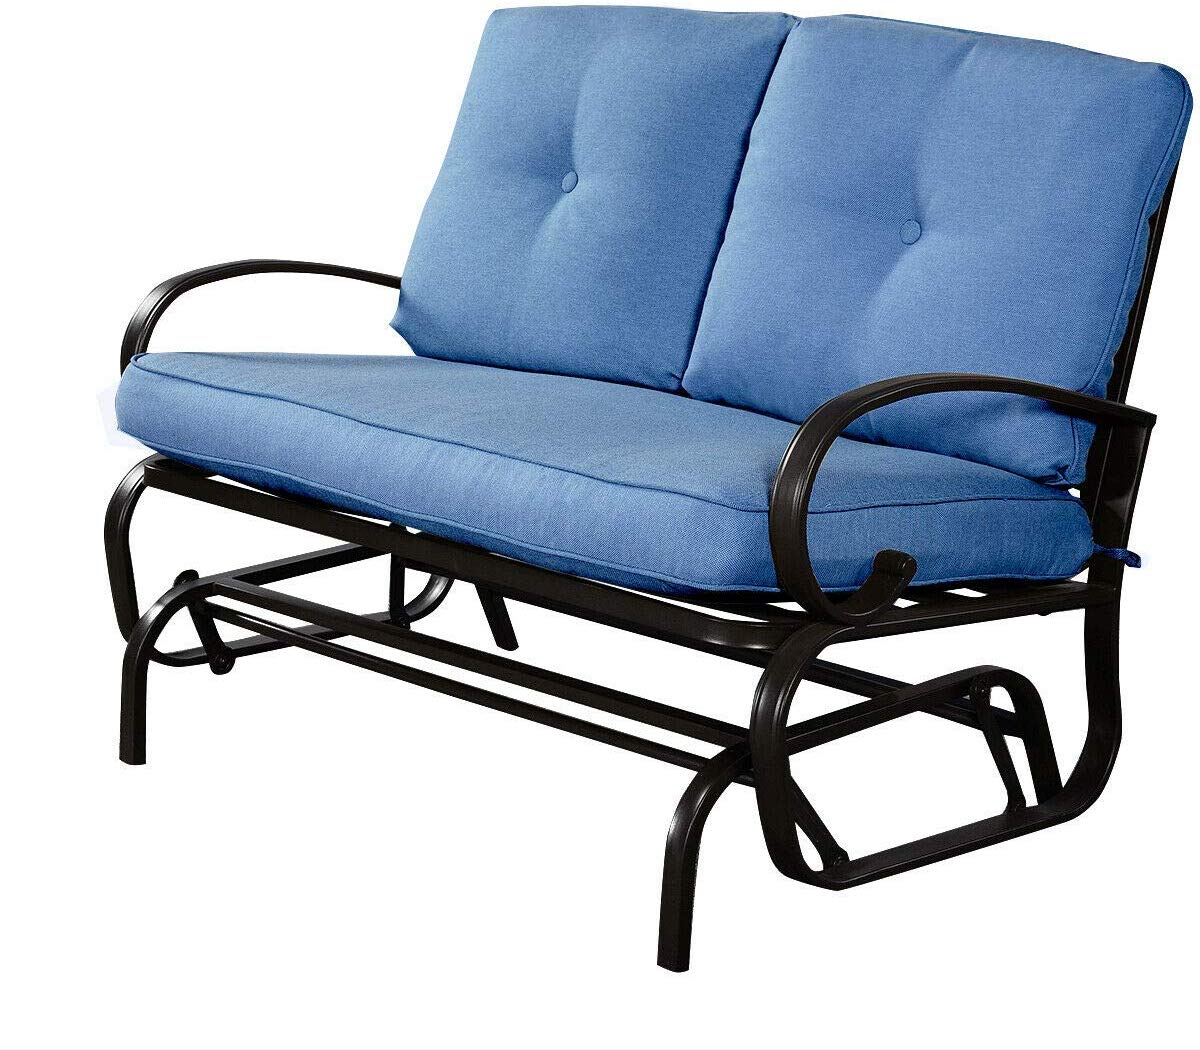 Famous Amazon: Outdoor Patio Glider Bench Loveseat For 2 Person For Loveseat Glider Benches With Cushions (View 15 of 30)